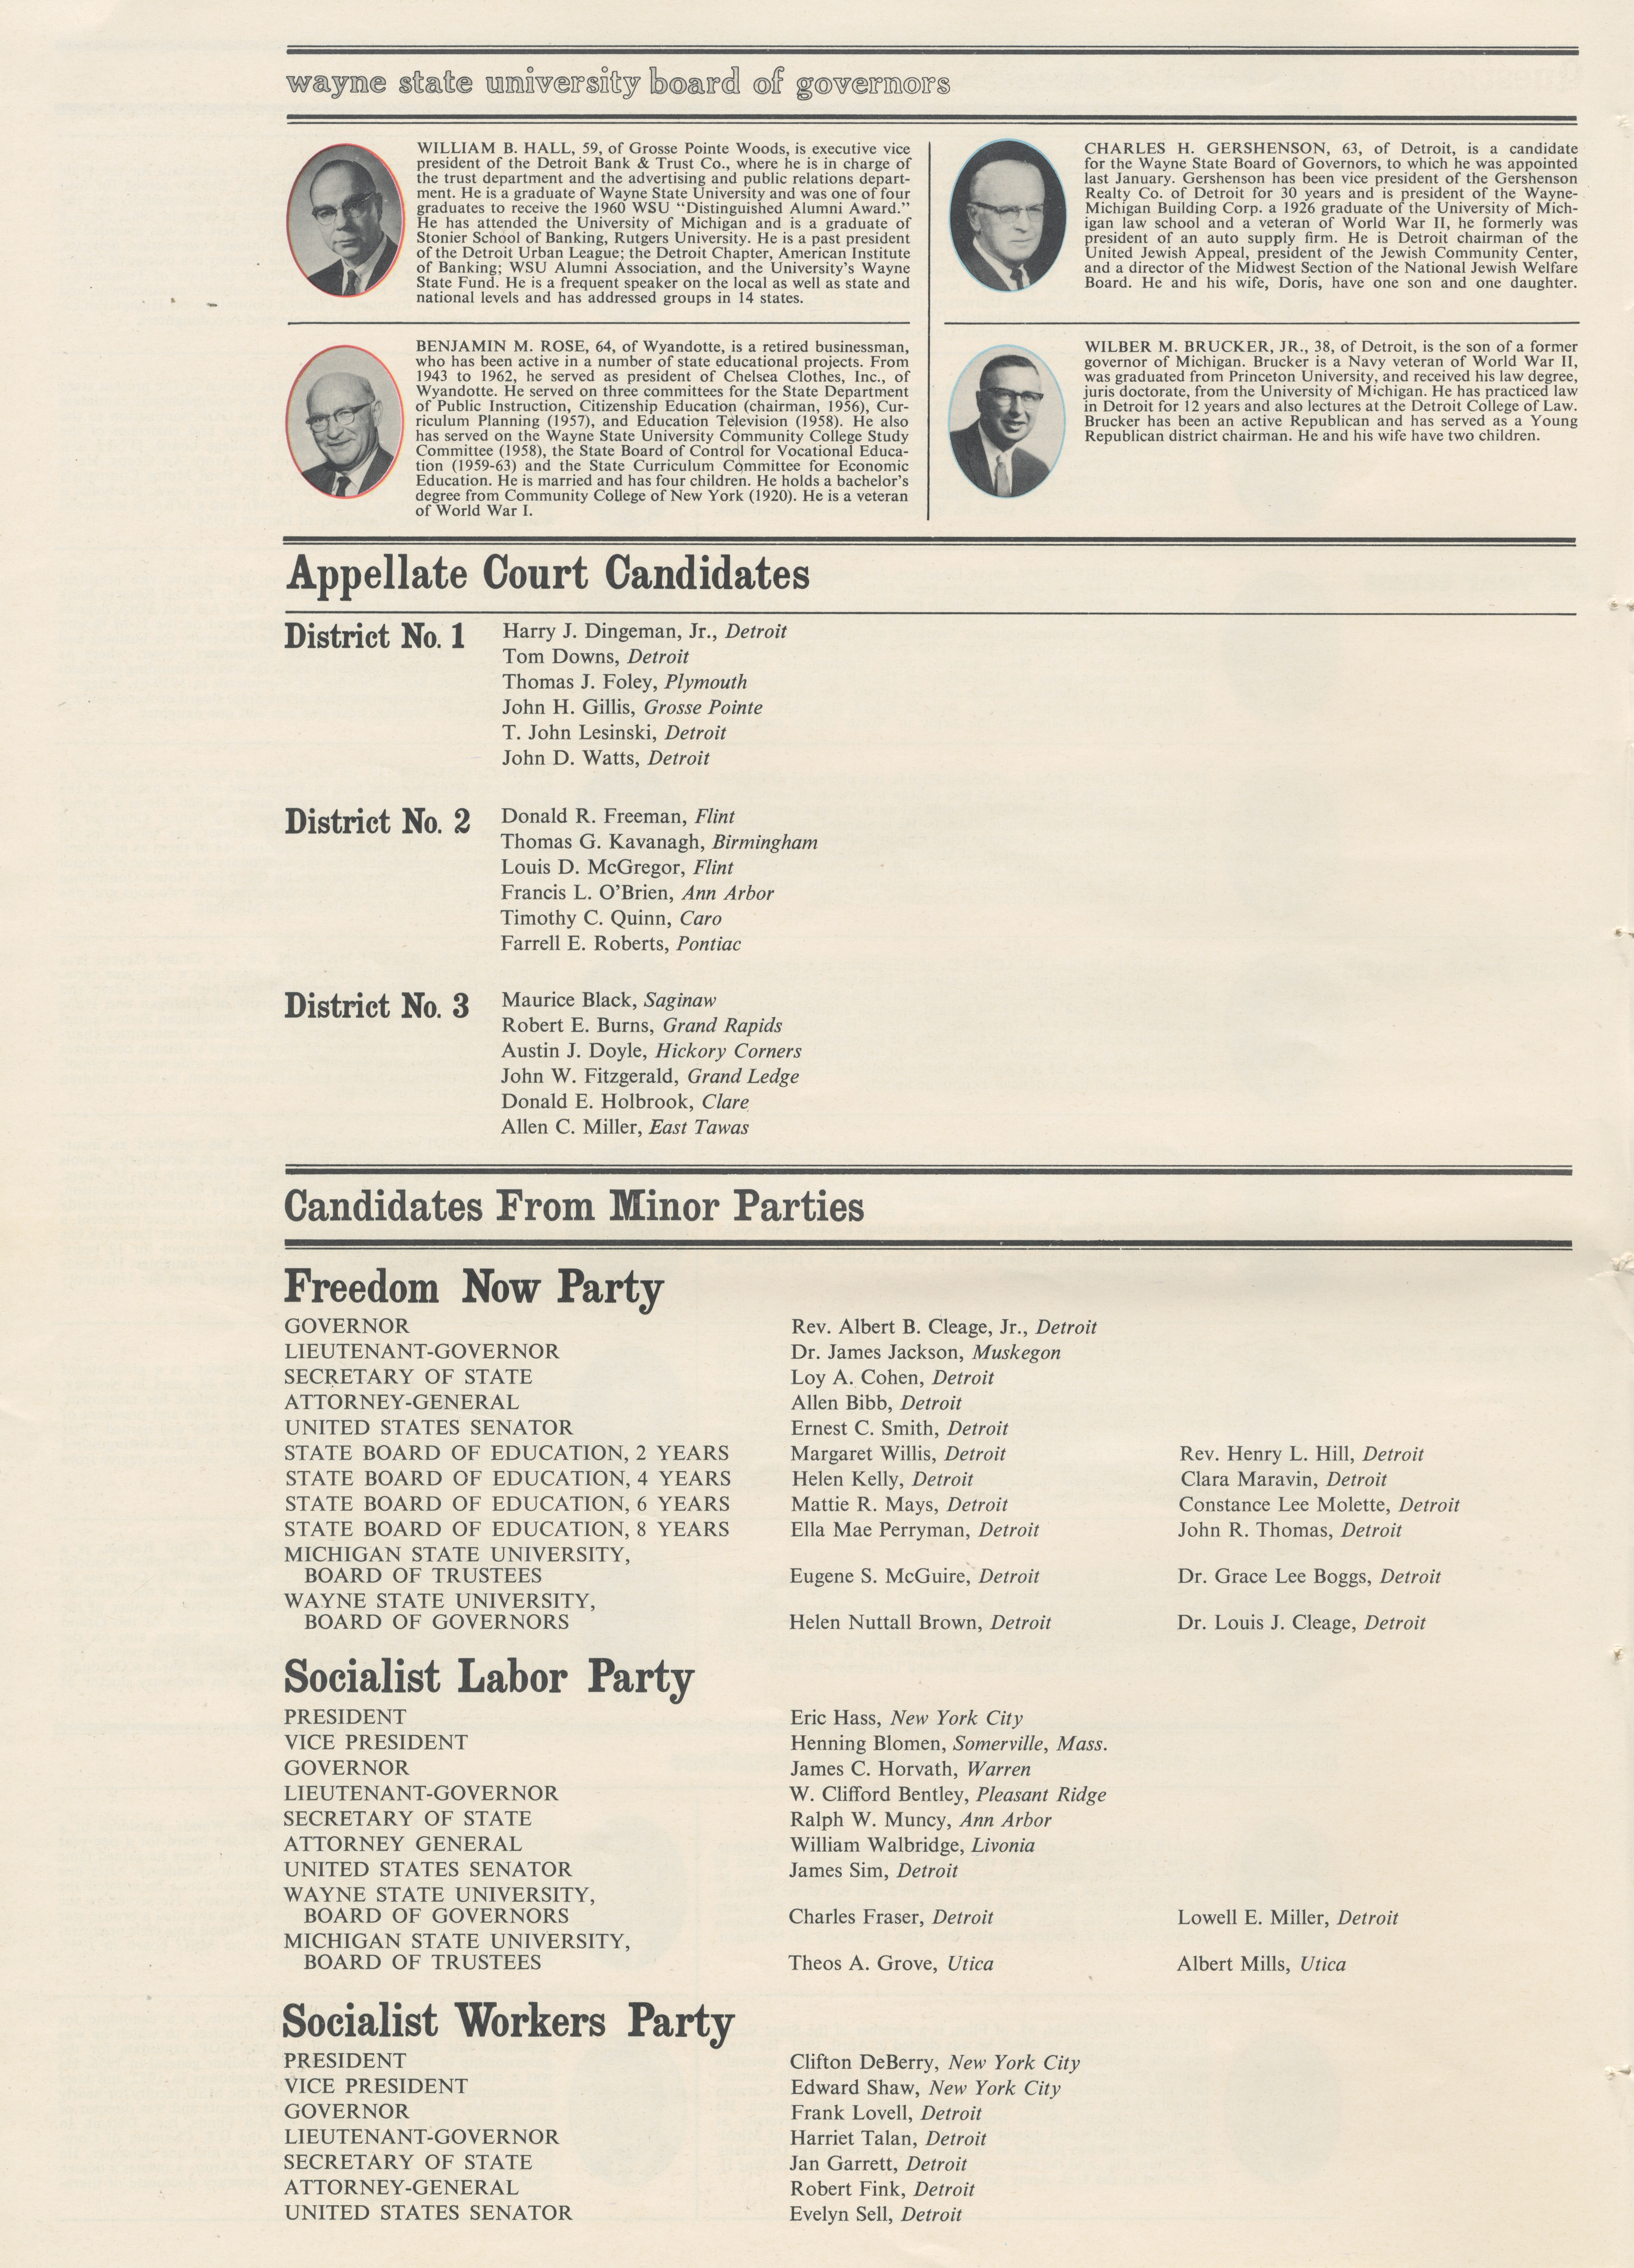 What You Should Know To Make Your Vote Count In 1964 ~ Wayne State University Board of Regents image